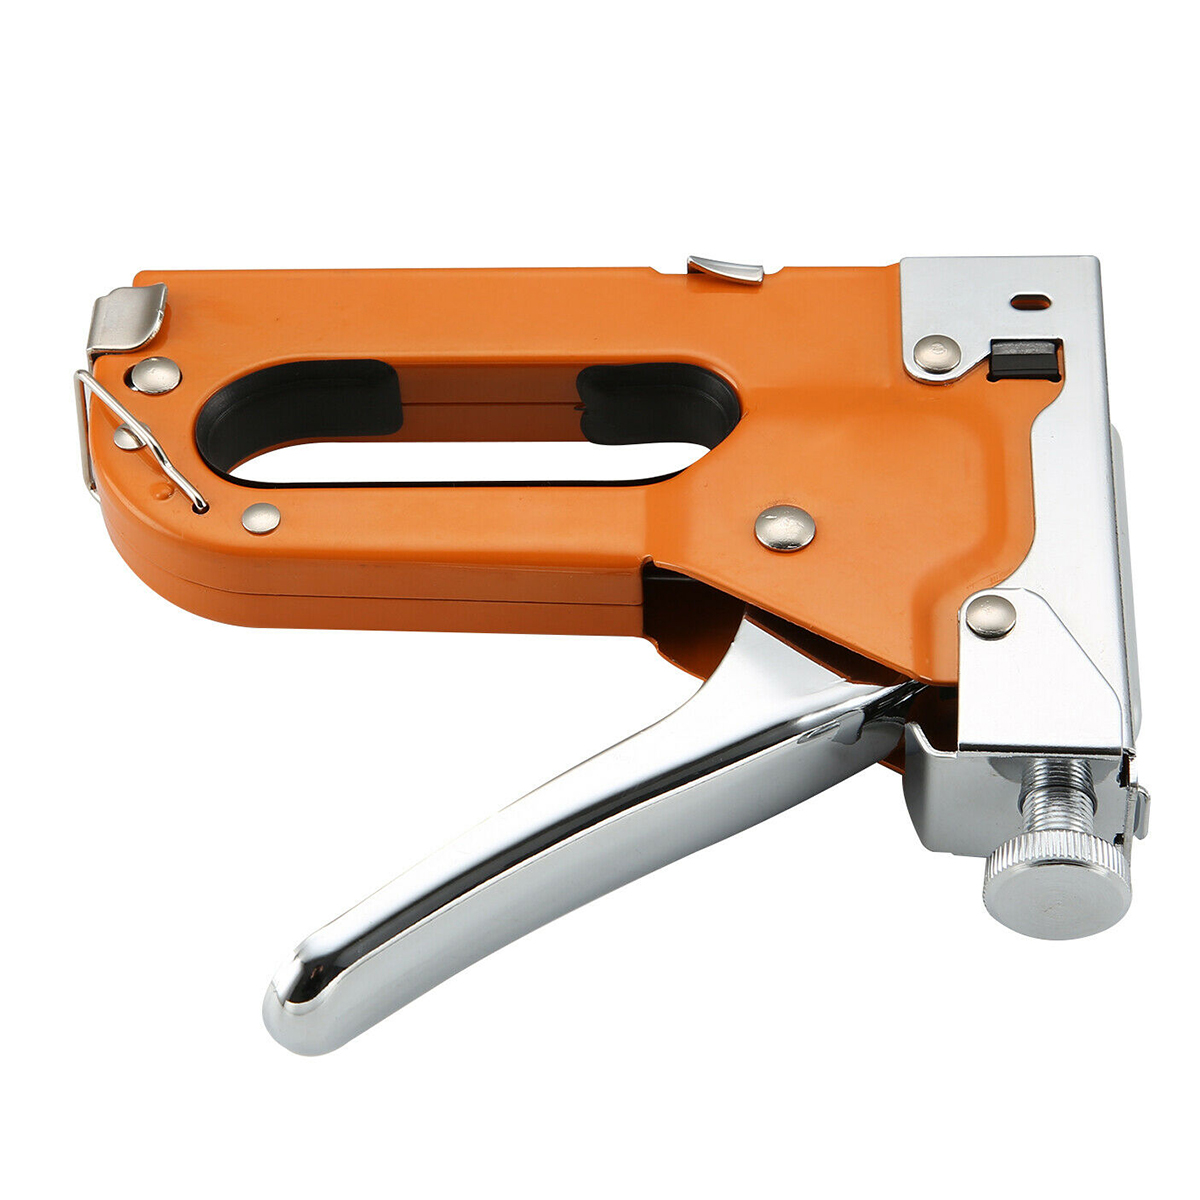 3-IN-1 Heavy Duty Manual Staple Gun Stapler Tacker With 600 Staple Tacker Hand Operated Steel Stapler Brad Nail